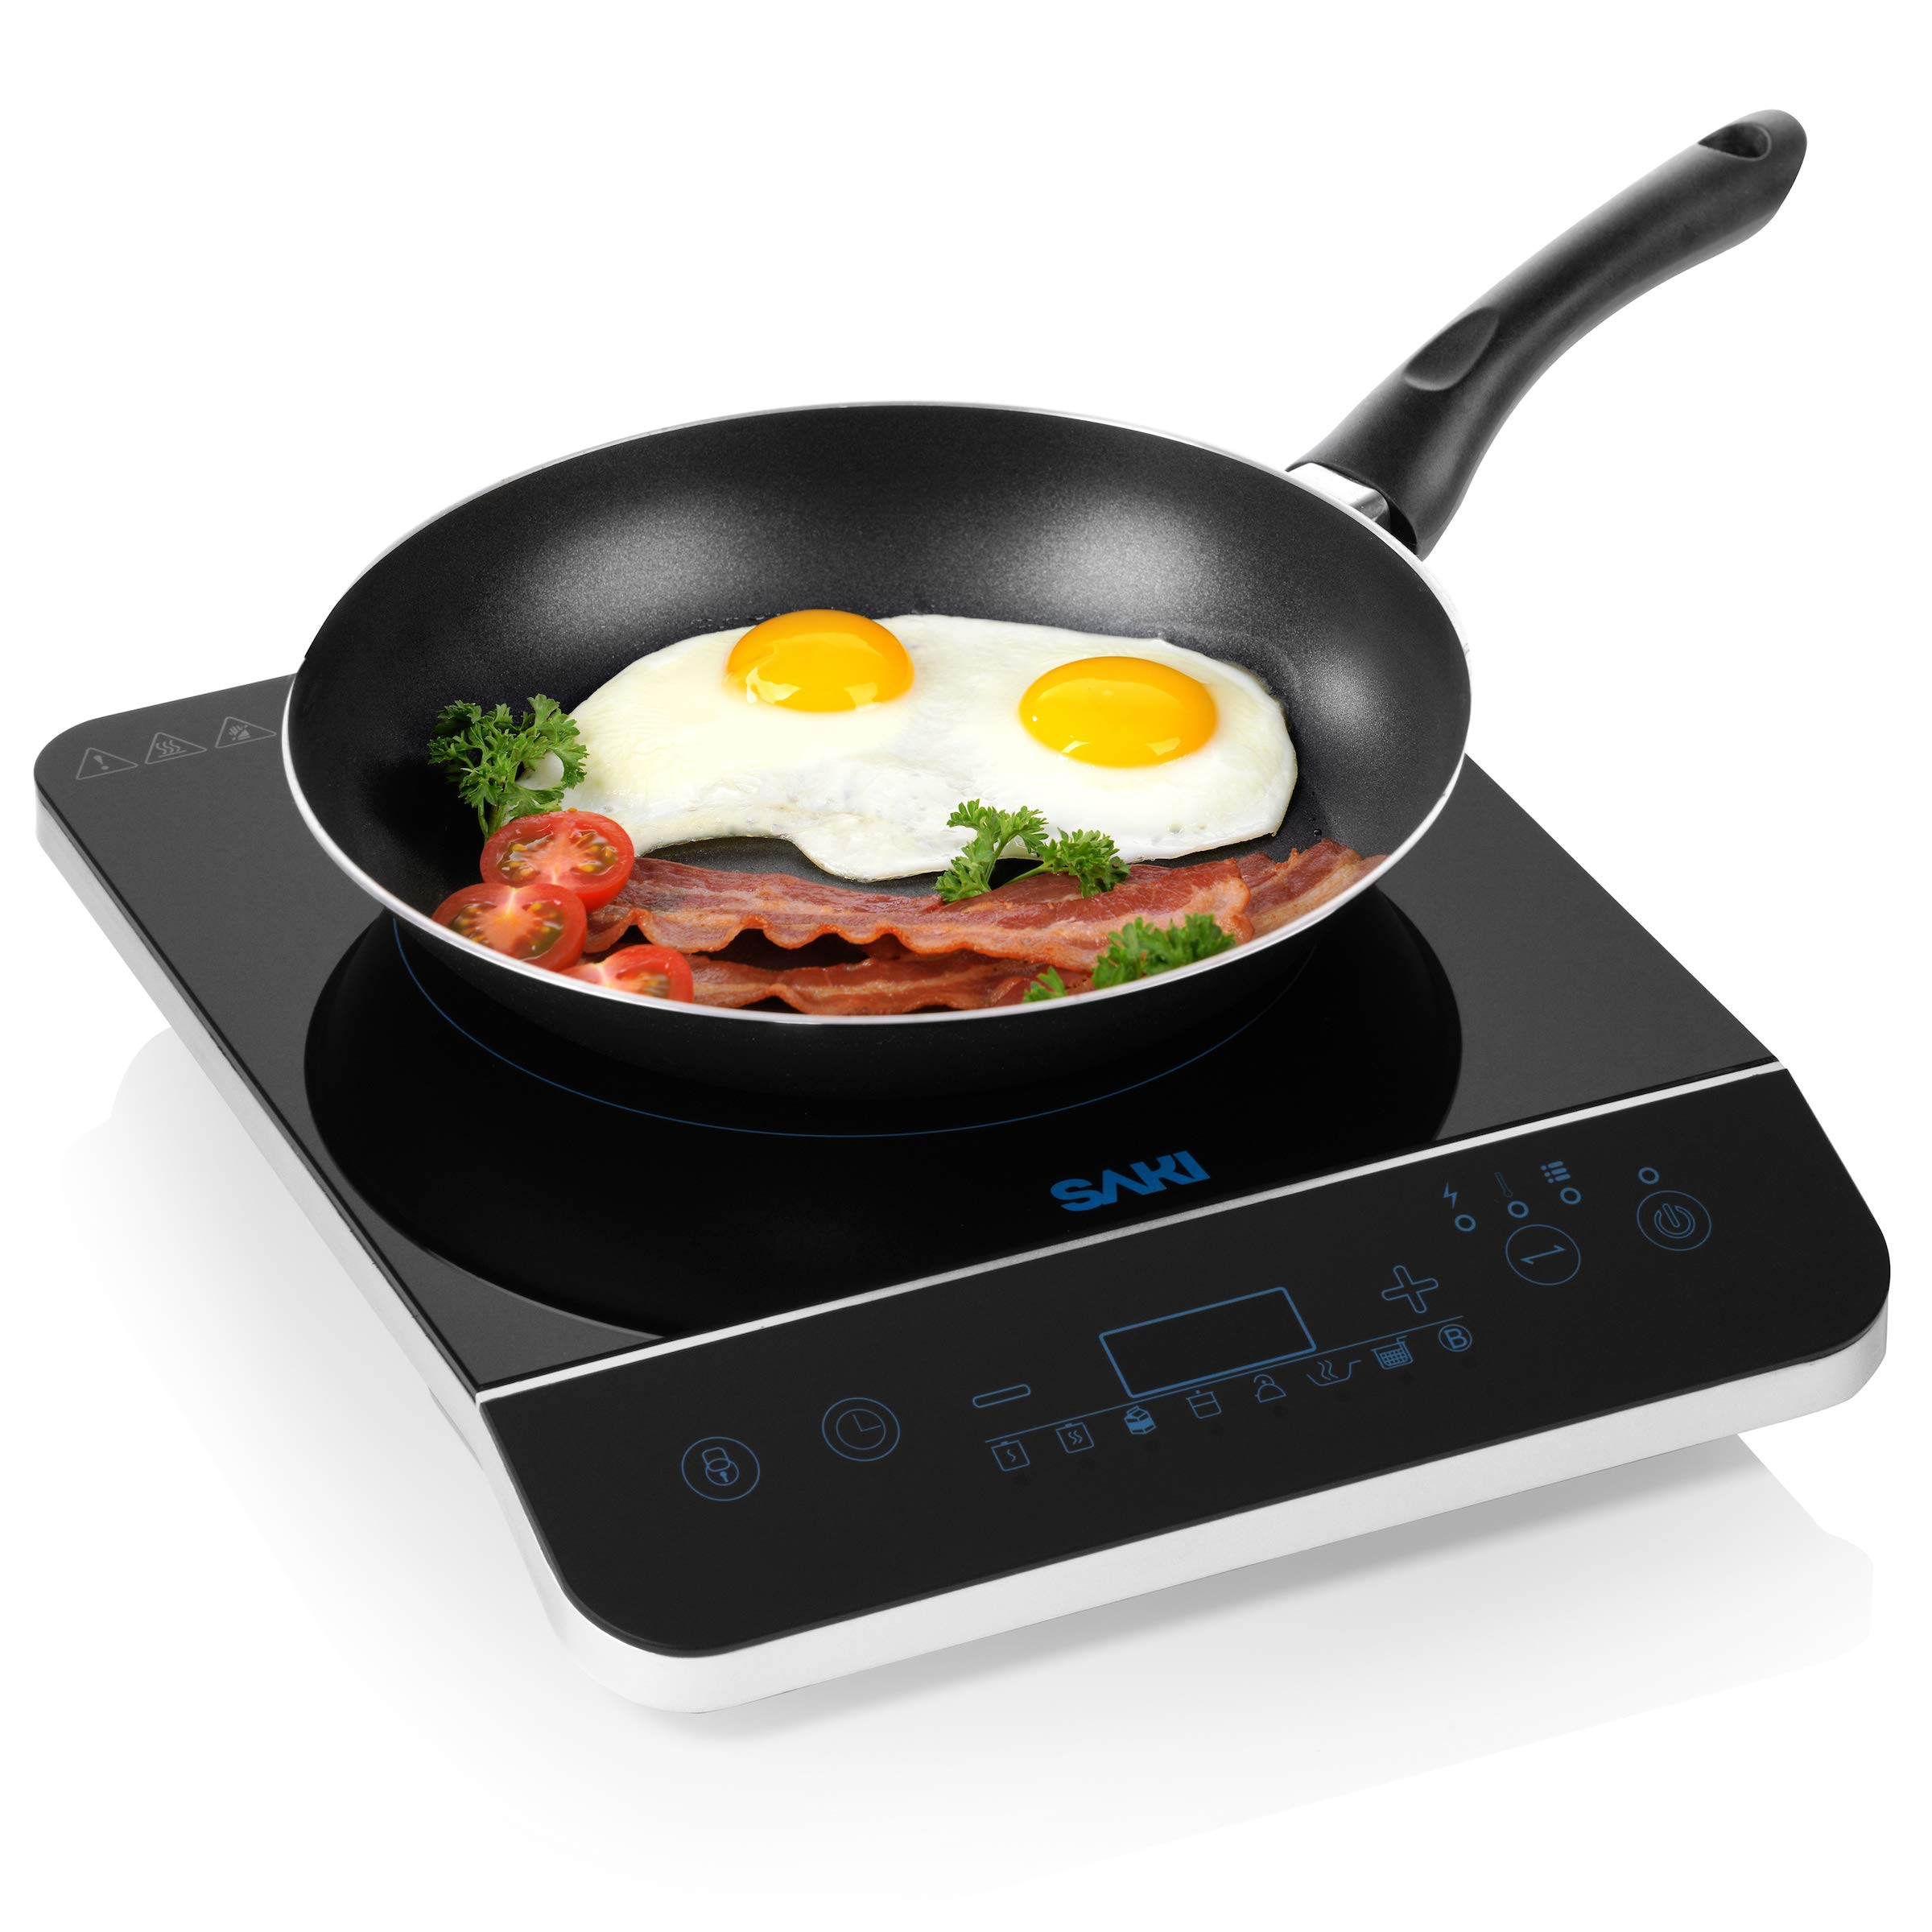 Saki Induction Cooktop - 1800W Portable Induction Cooker Countertop Burner Electric Stovetop, 8-level power control, Touch Sensor, Kids Safety Lock, Timer, for stainless steel Pot & Pan